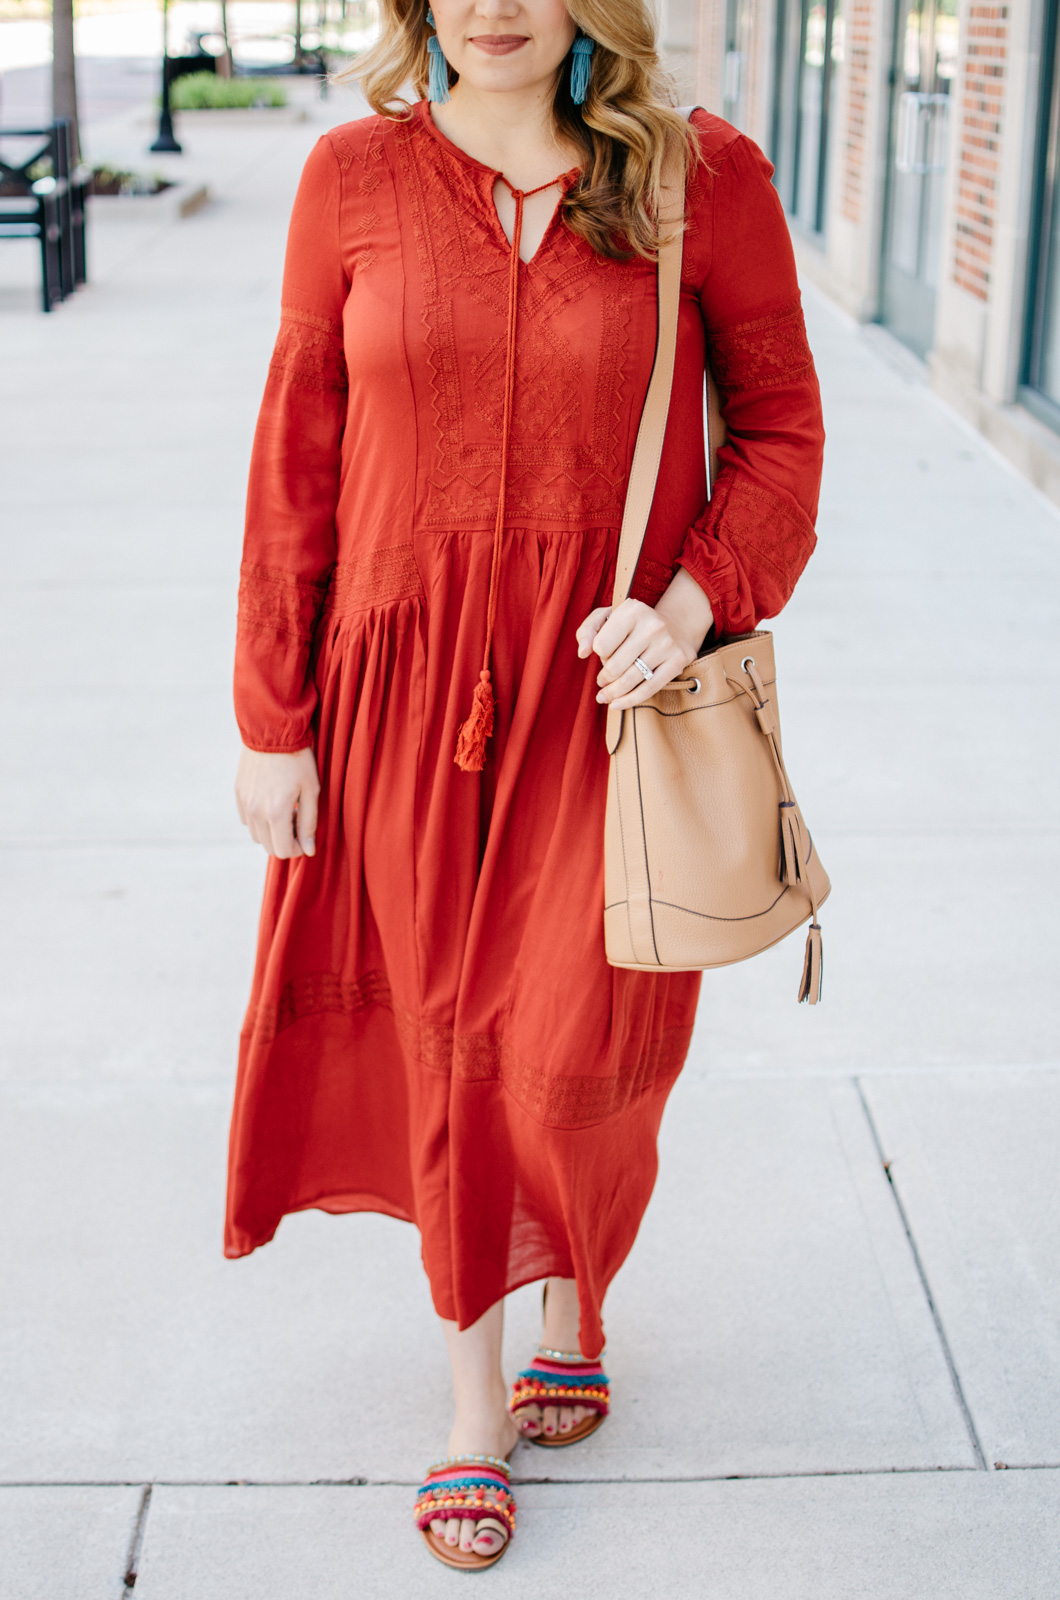 summer maxi dress outfit - boho maxi | For more cute casual outfit ideas, head to bylaurenm.com!